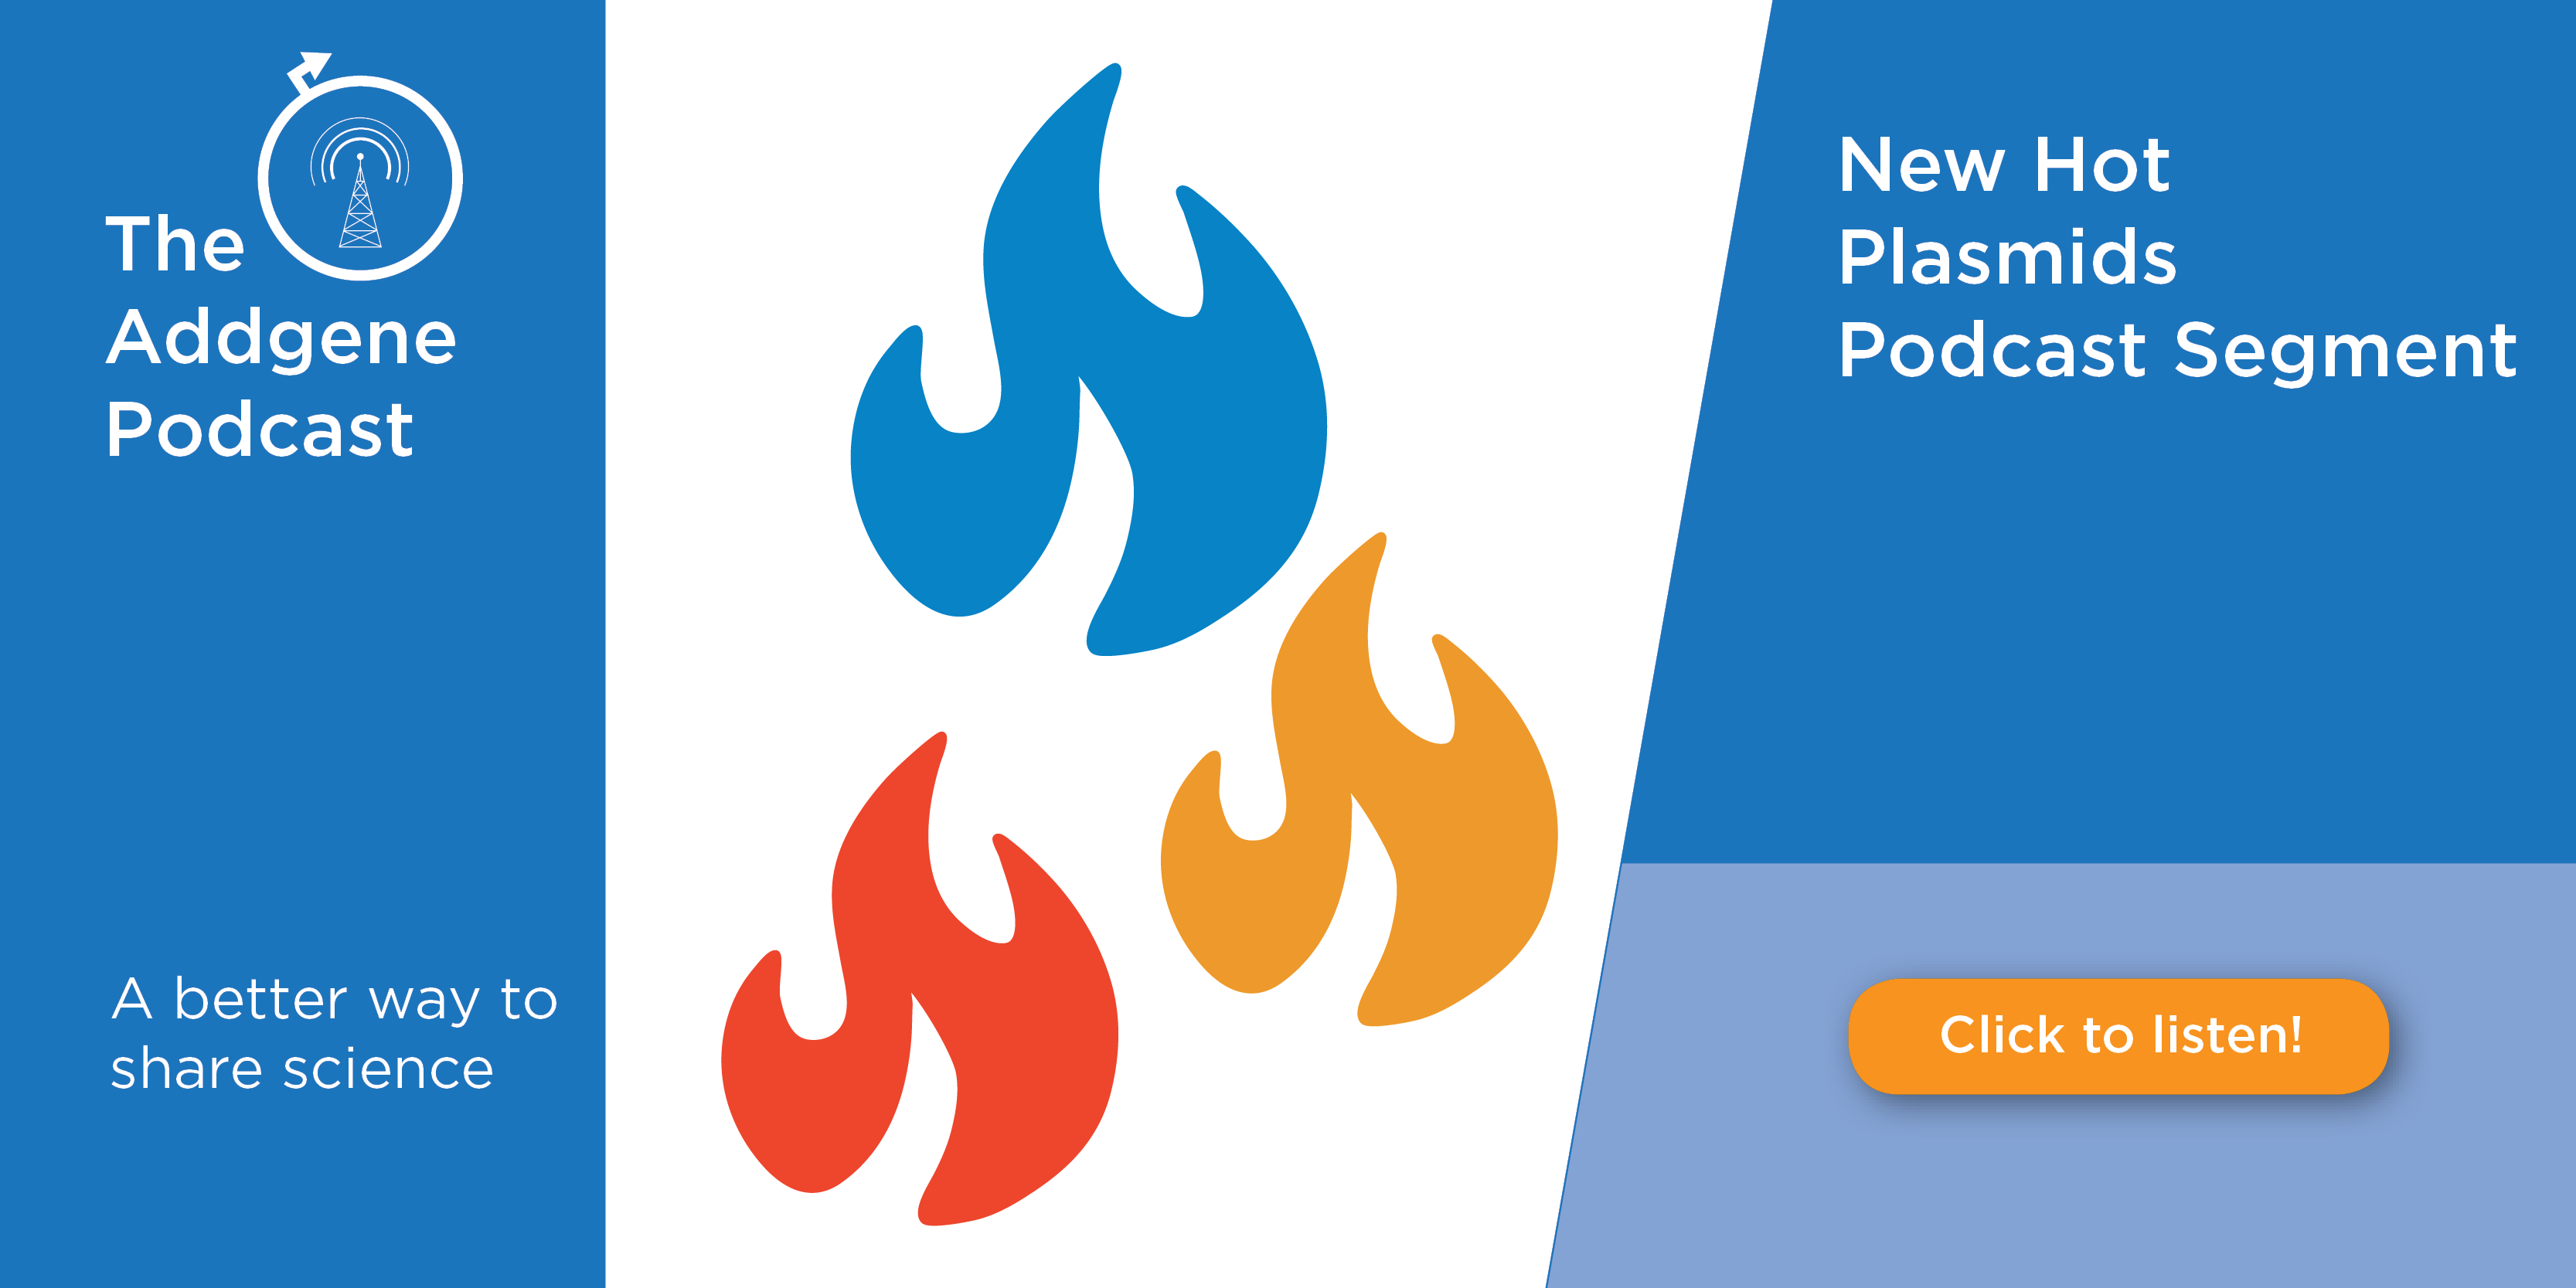 Hot Plasmids Podcast